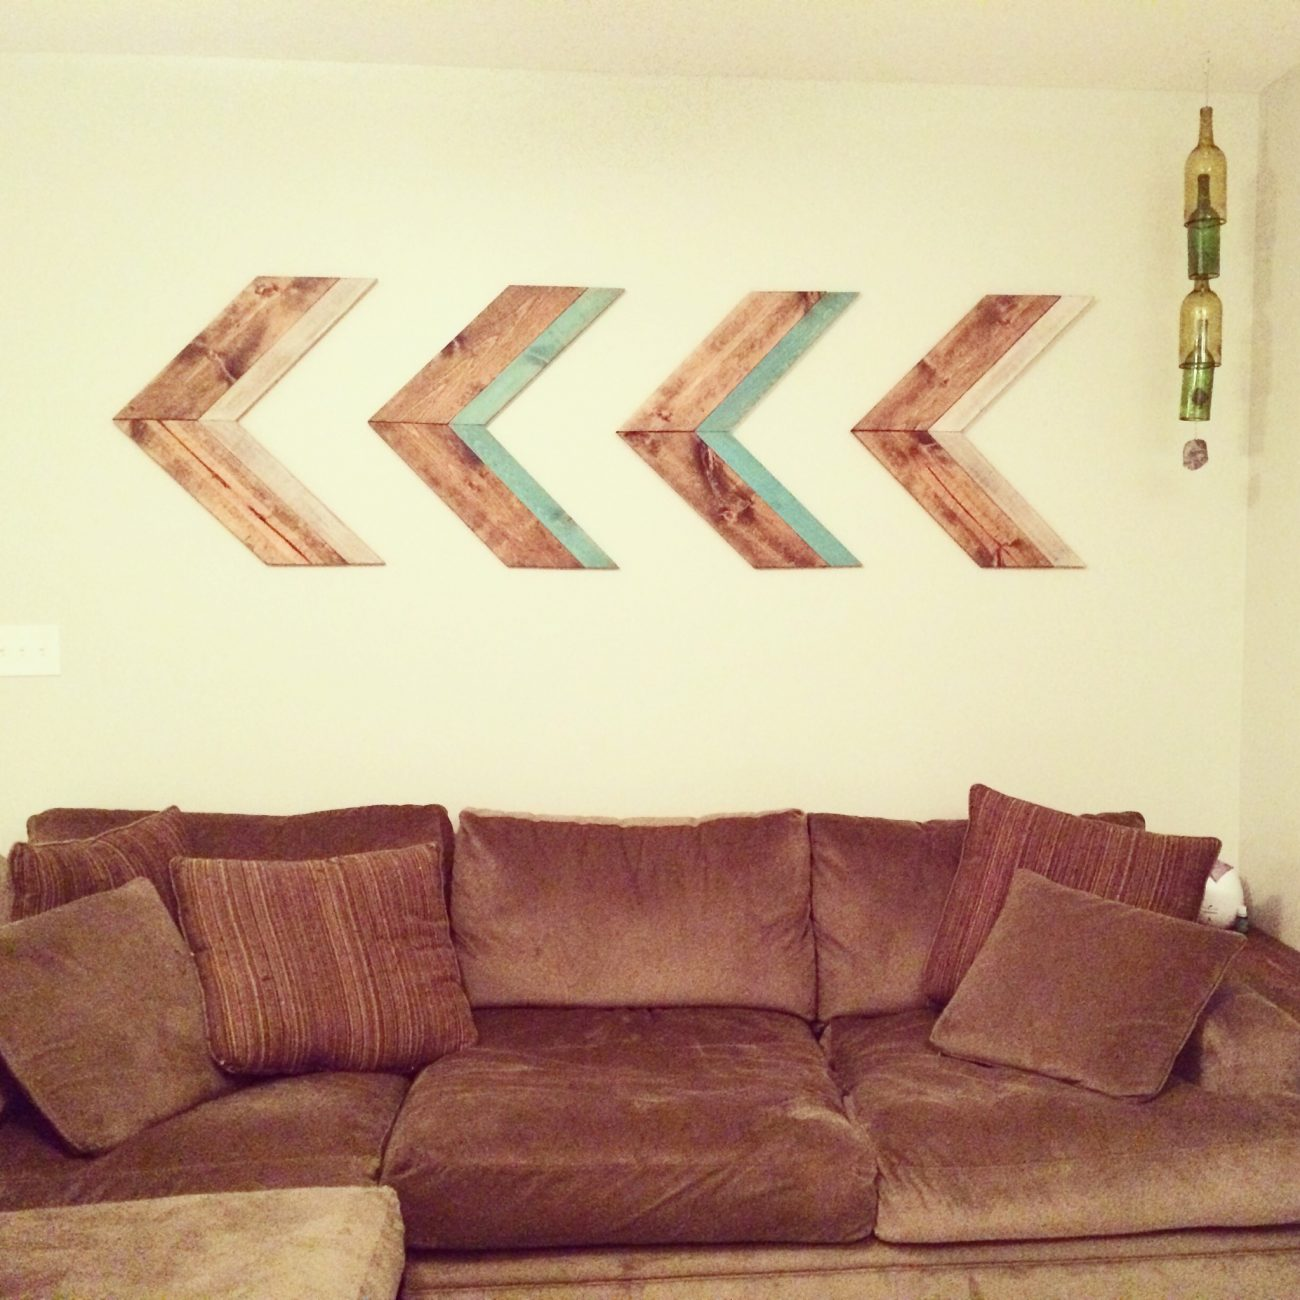 Wooden arrows above couch